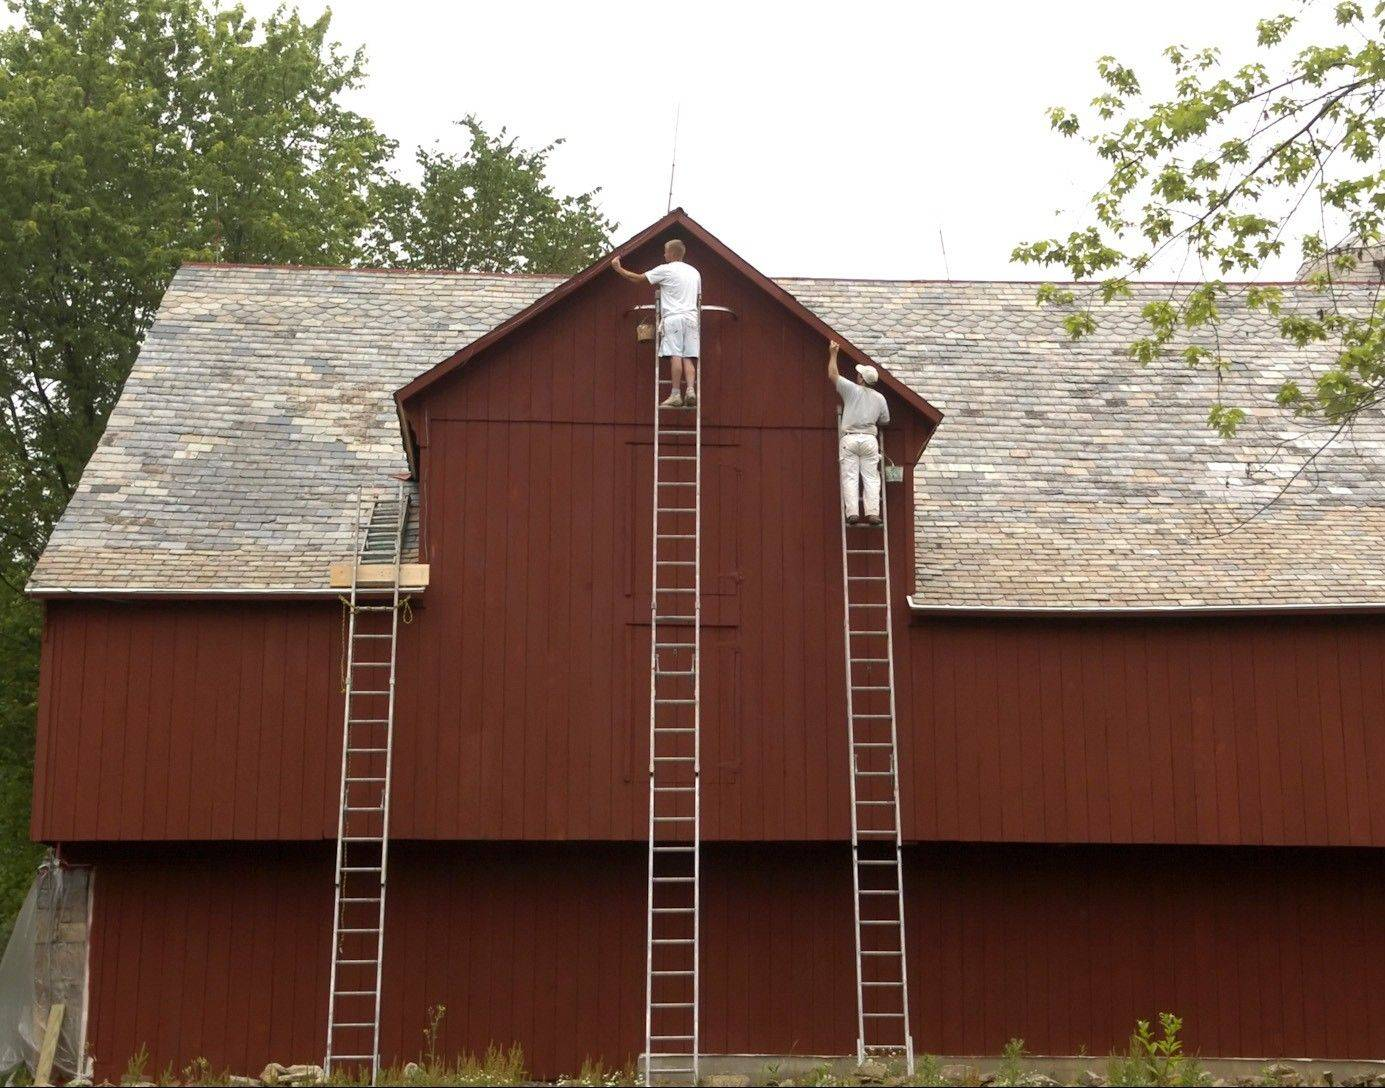 For outside paint jobs, hiring a pro eliminates the need for the homeowner to get up on a ladder.